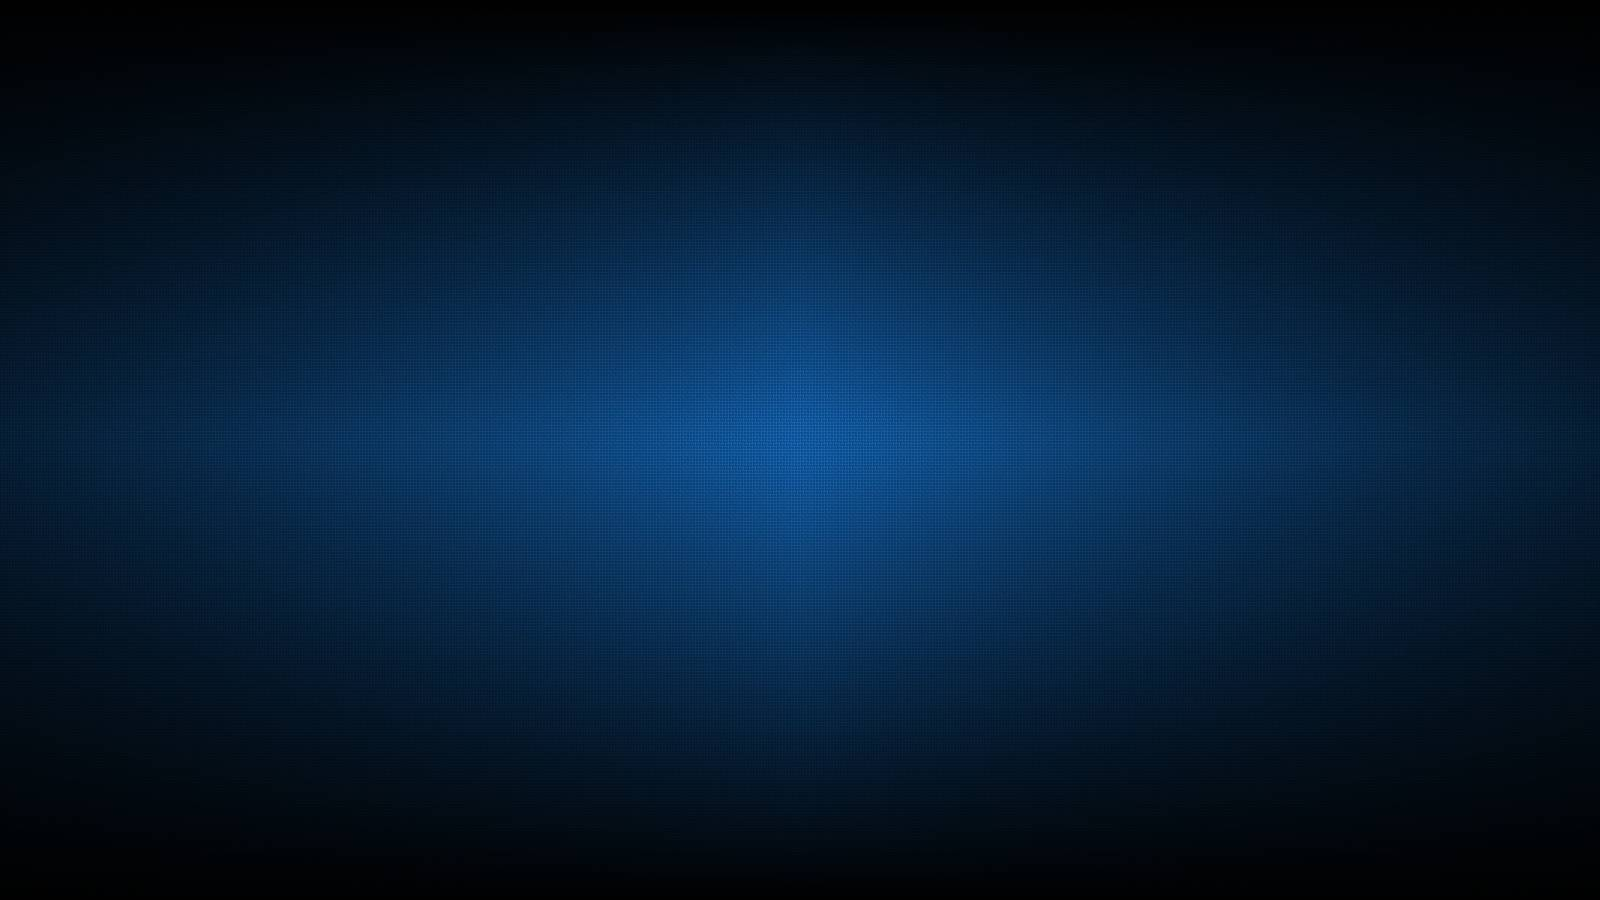 Dark blue wallpapers wallpaper cave - Dark blue wallpaper hd for android ...